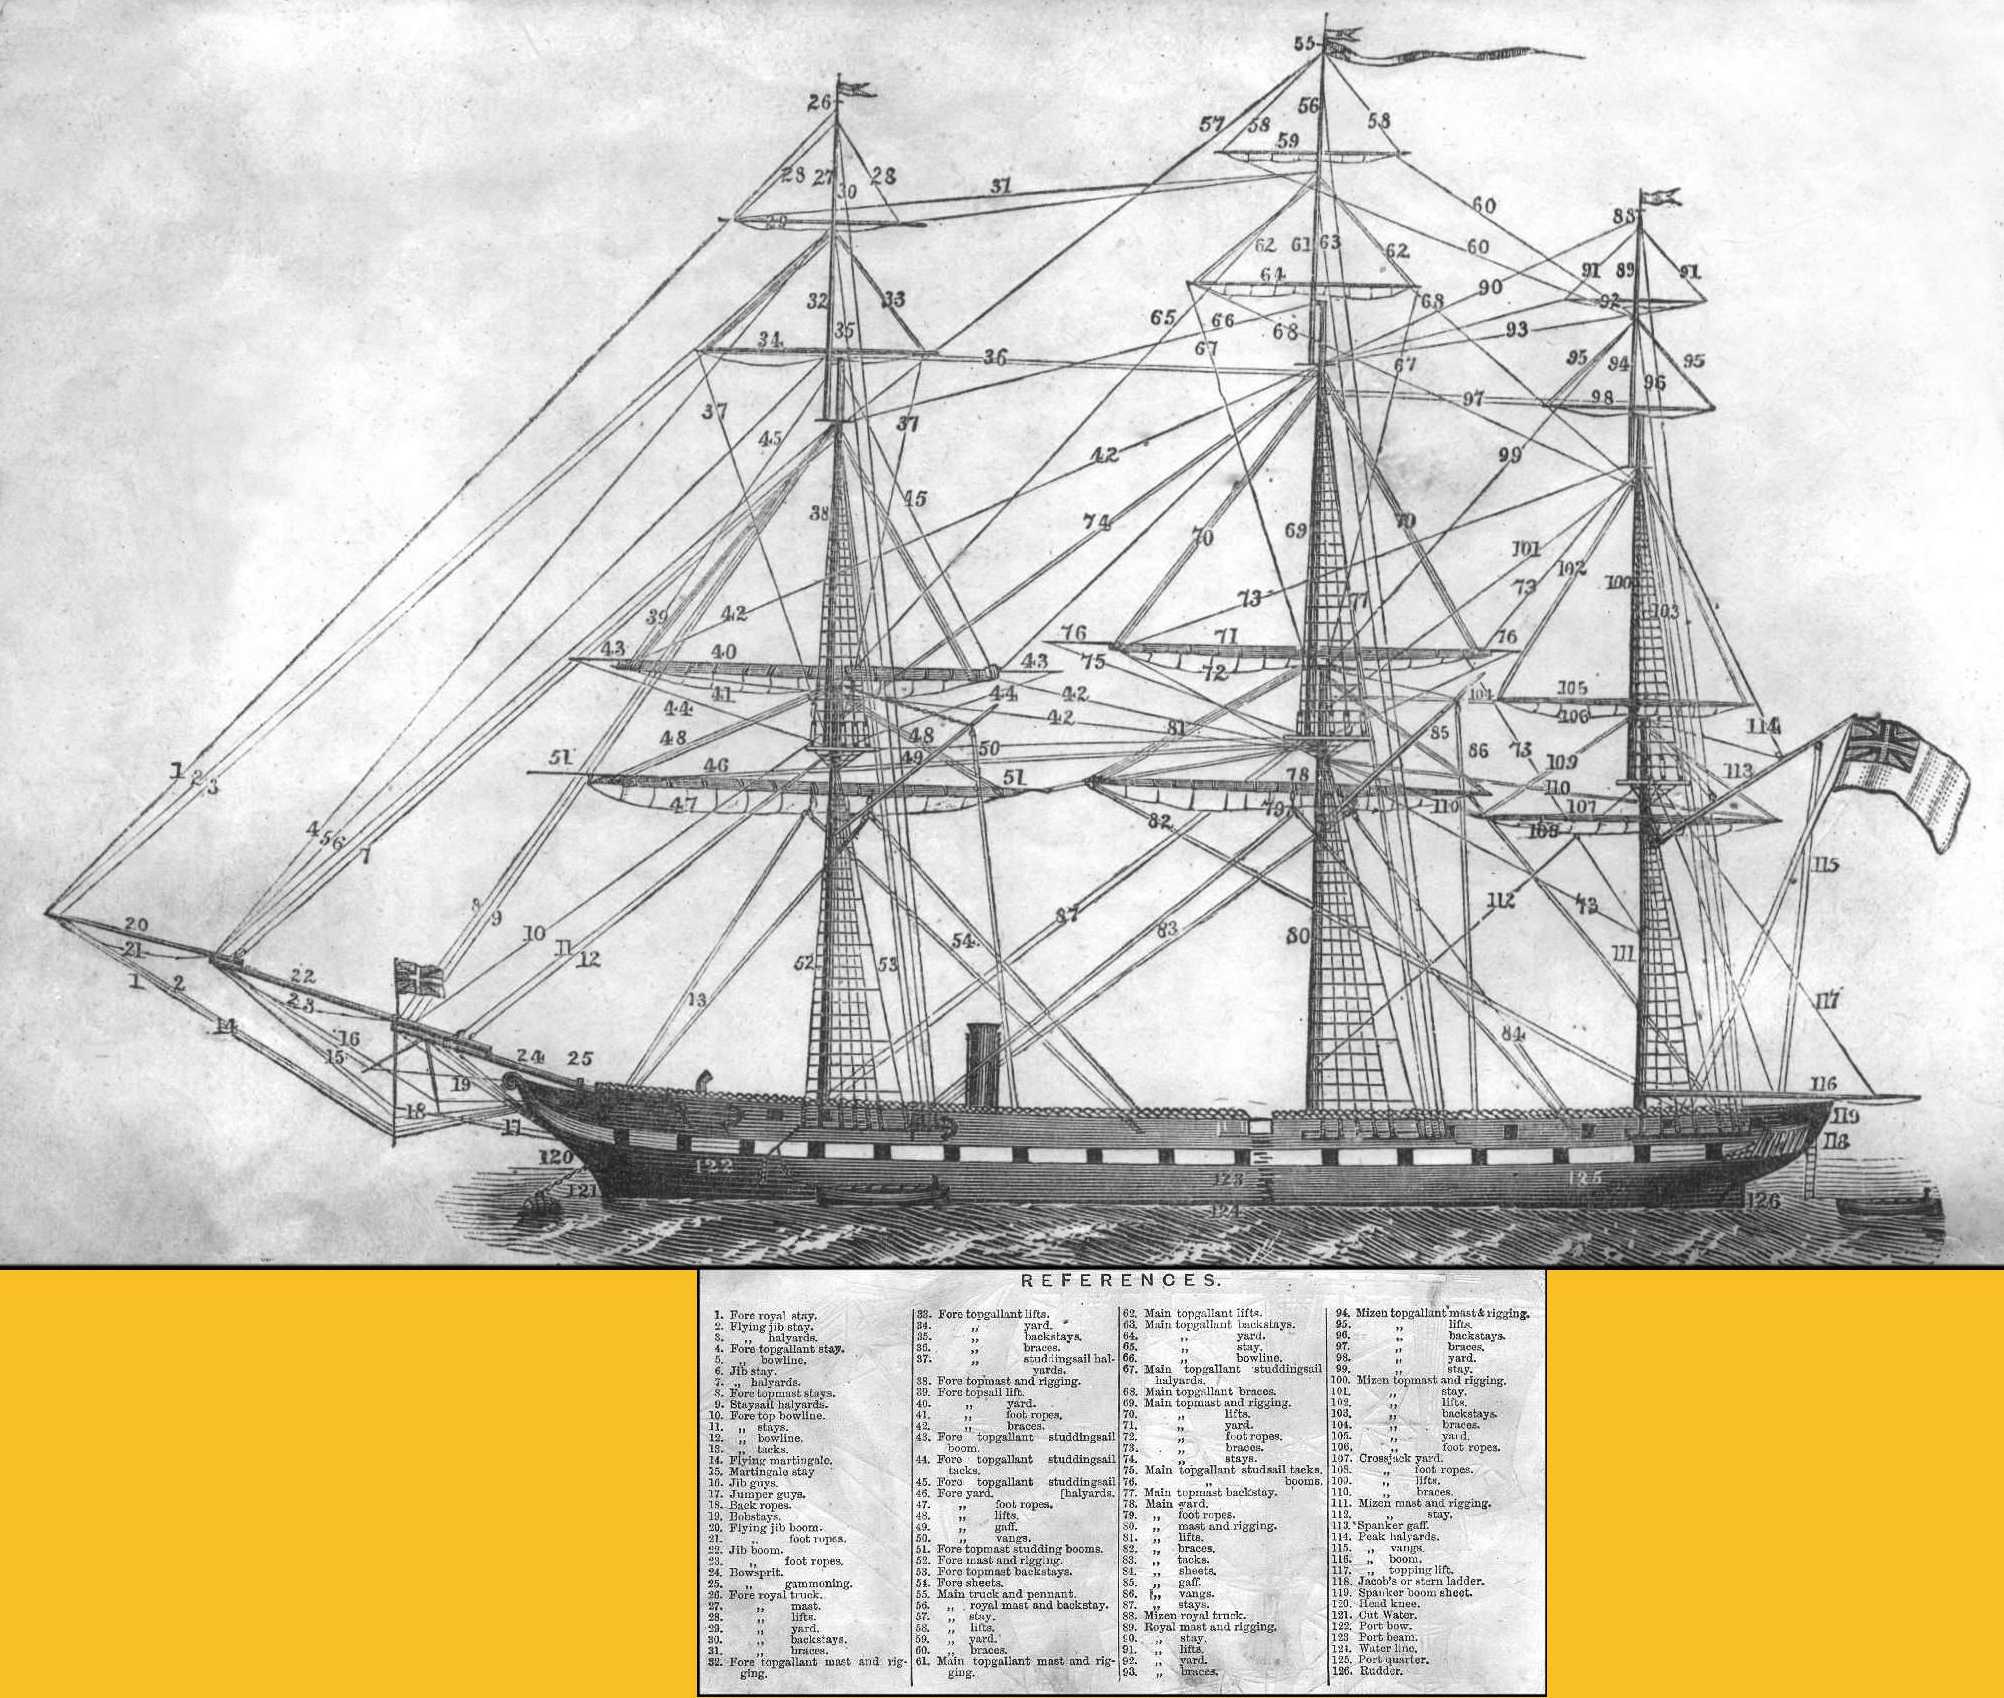 Sailing Ship Rigging Schematics http://www.rmhh.co.uk/mariners.html